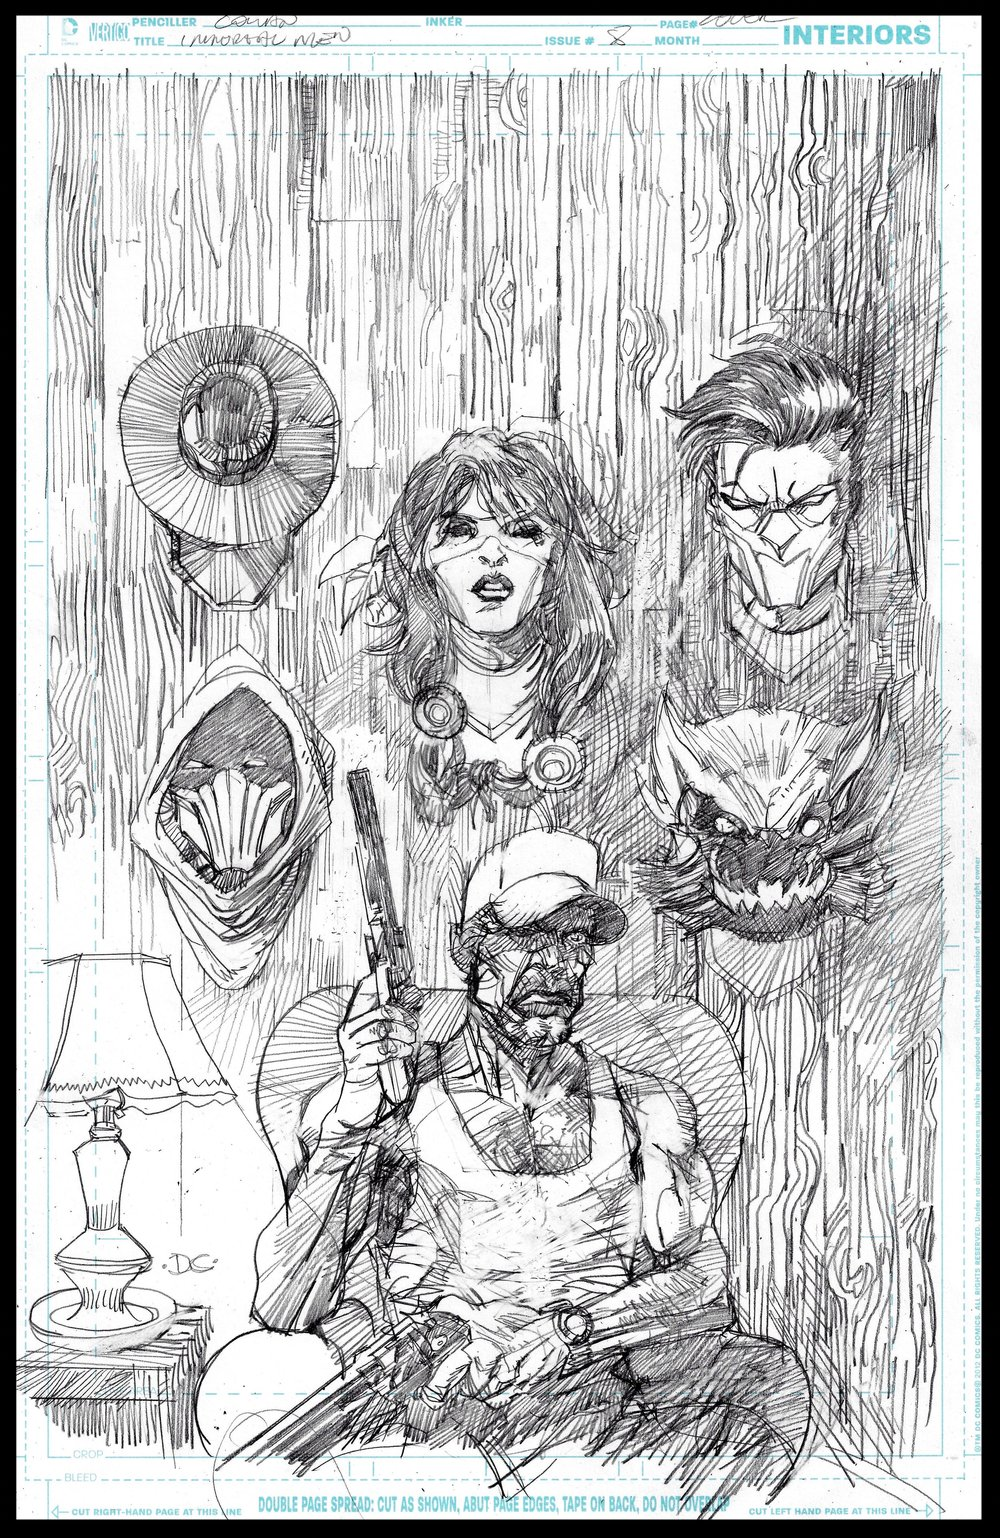 Immortal Men #8 (unpublished) - Cover - Pencils